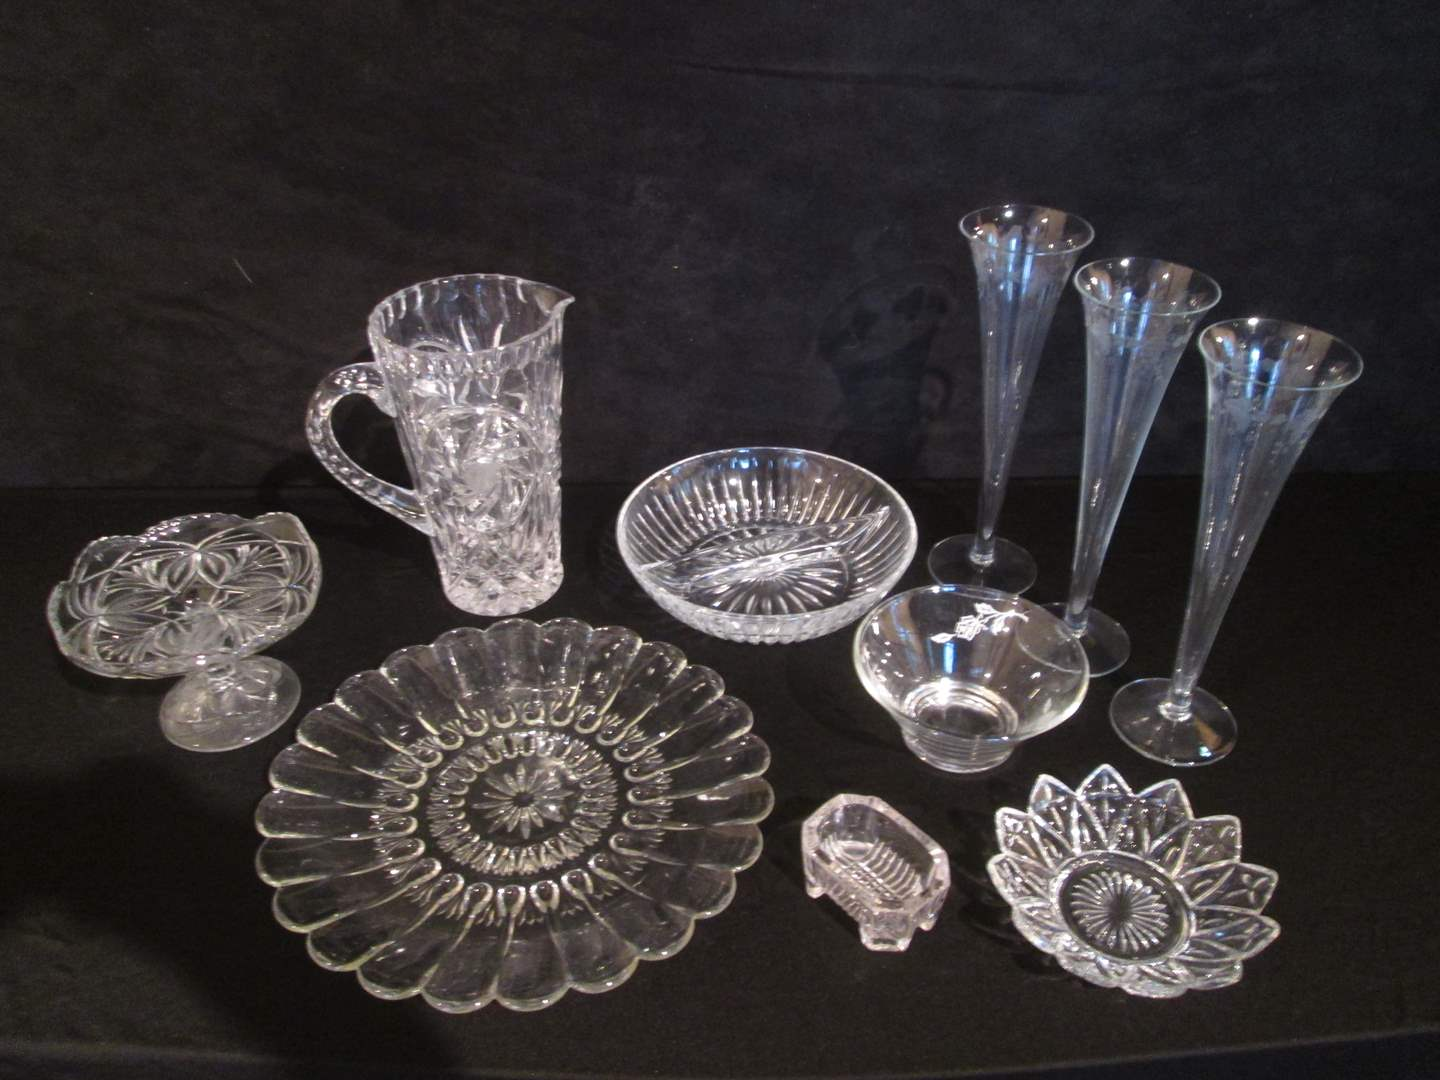 Lot # 22 - Crystal Serving Pieces, 10 Items (main image)